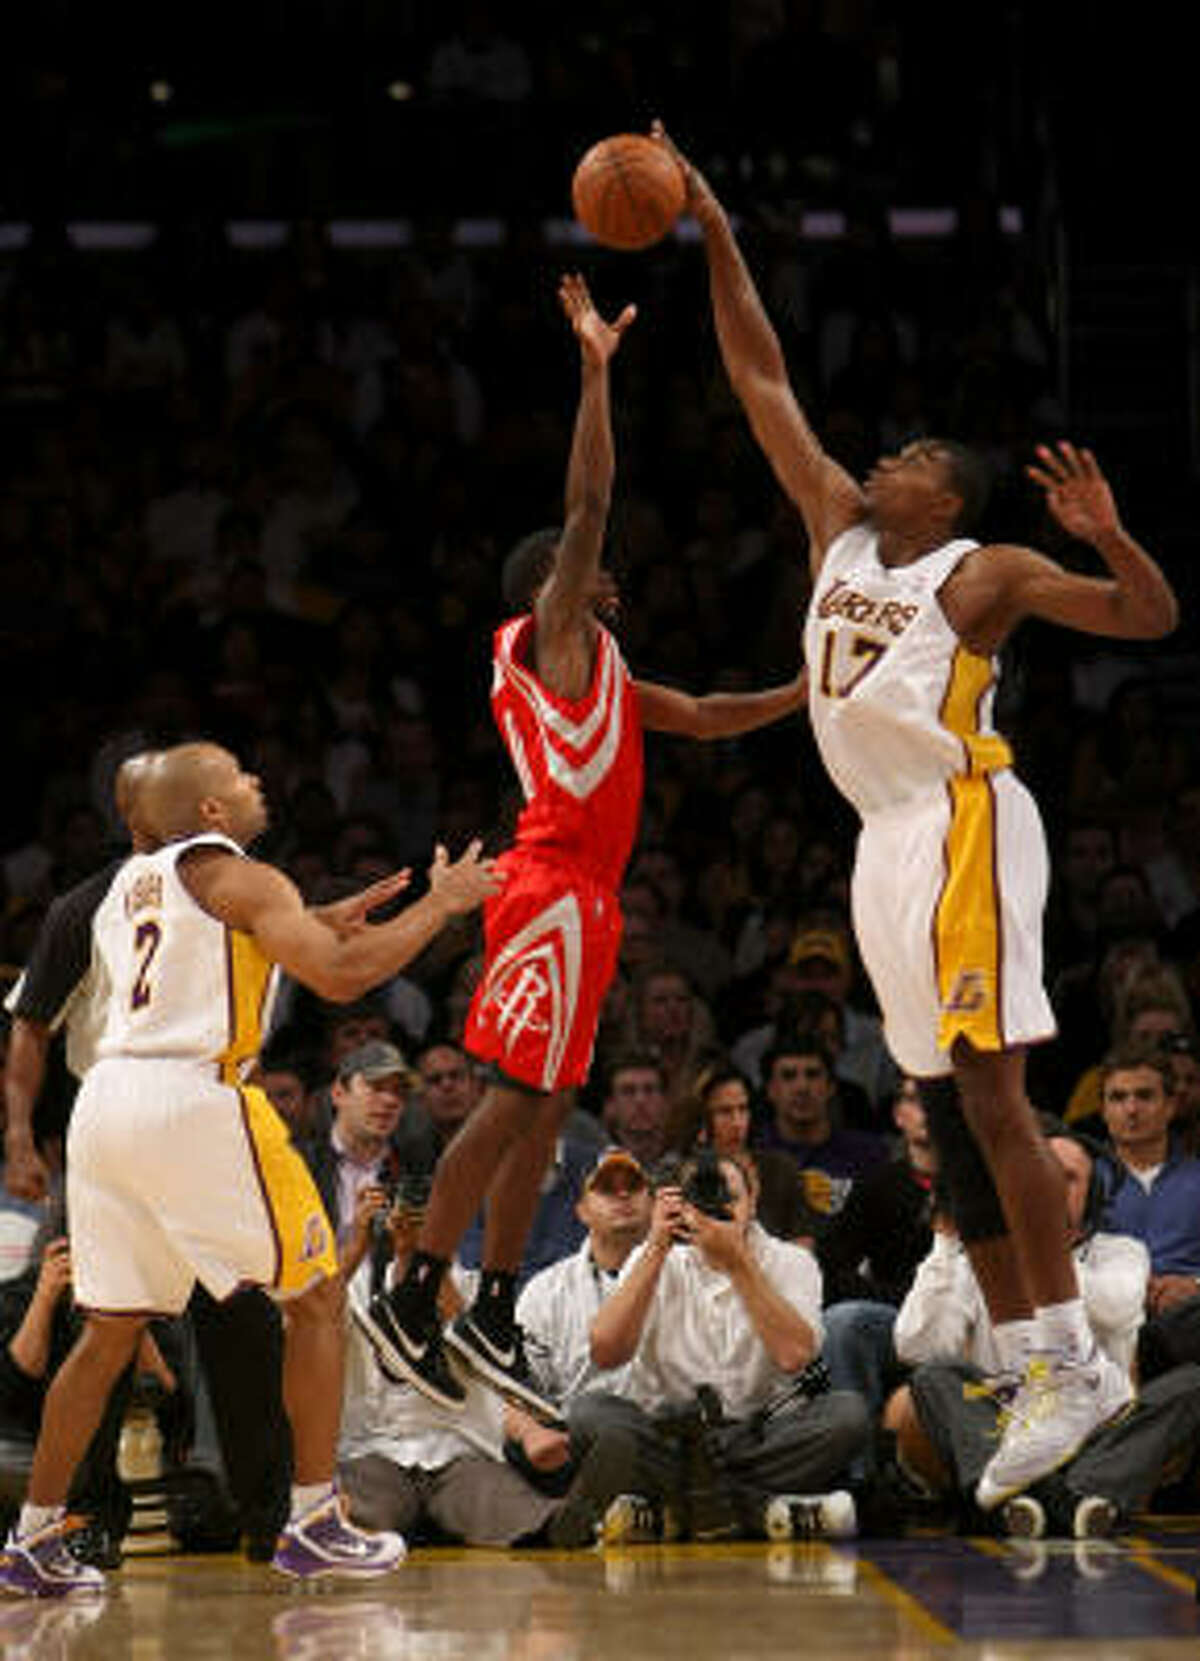 Lakers center Andrew Bynum, right, blocks a shot by Rockets guard Aaron Brooks, center.